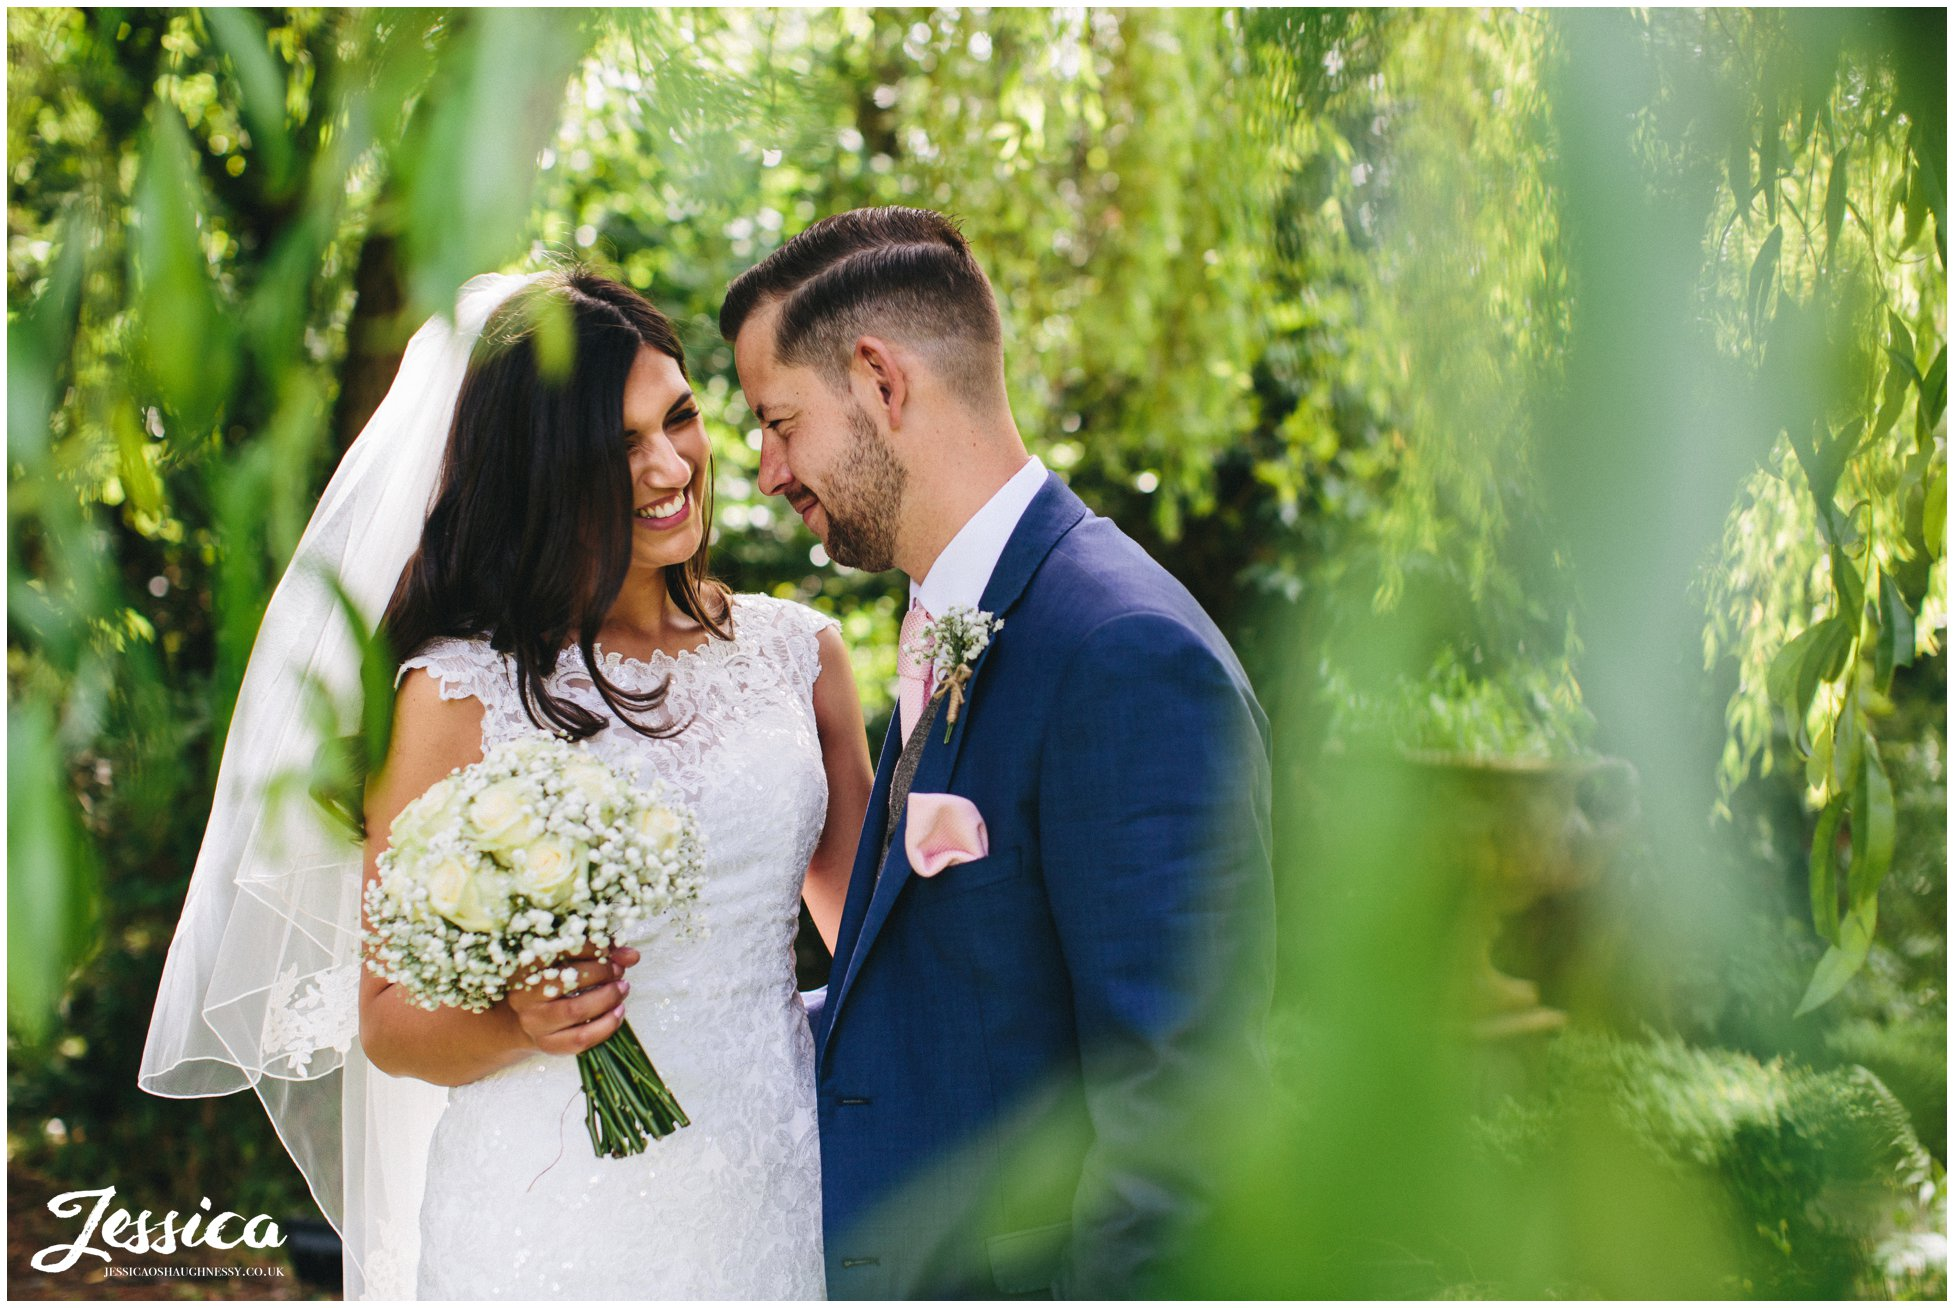 newly wed's smiling at each other under the willow tree